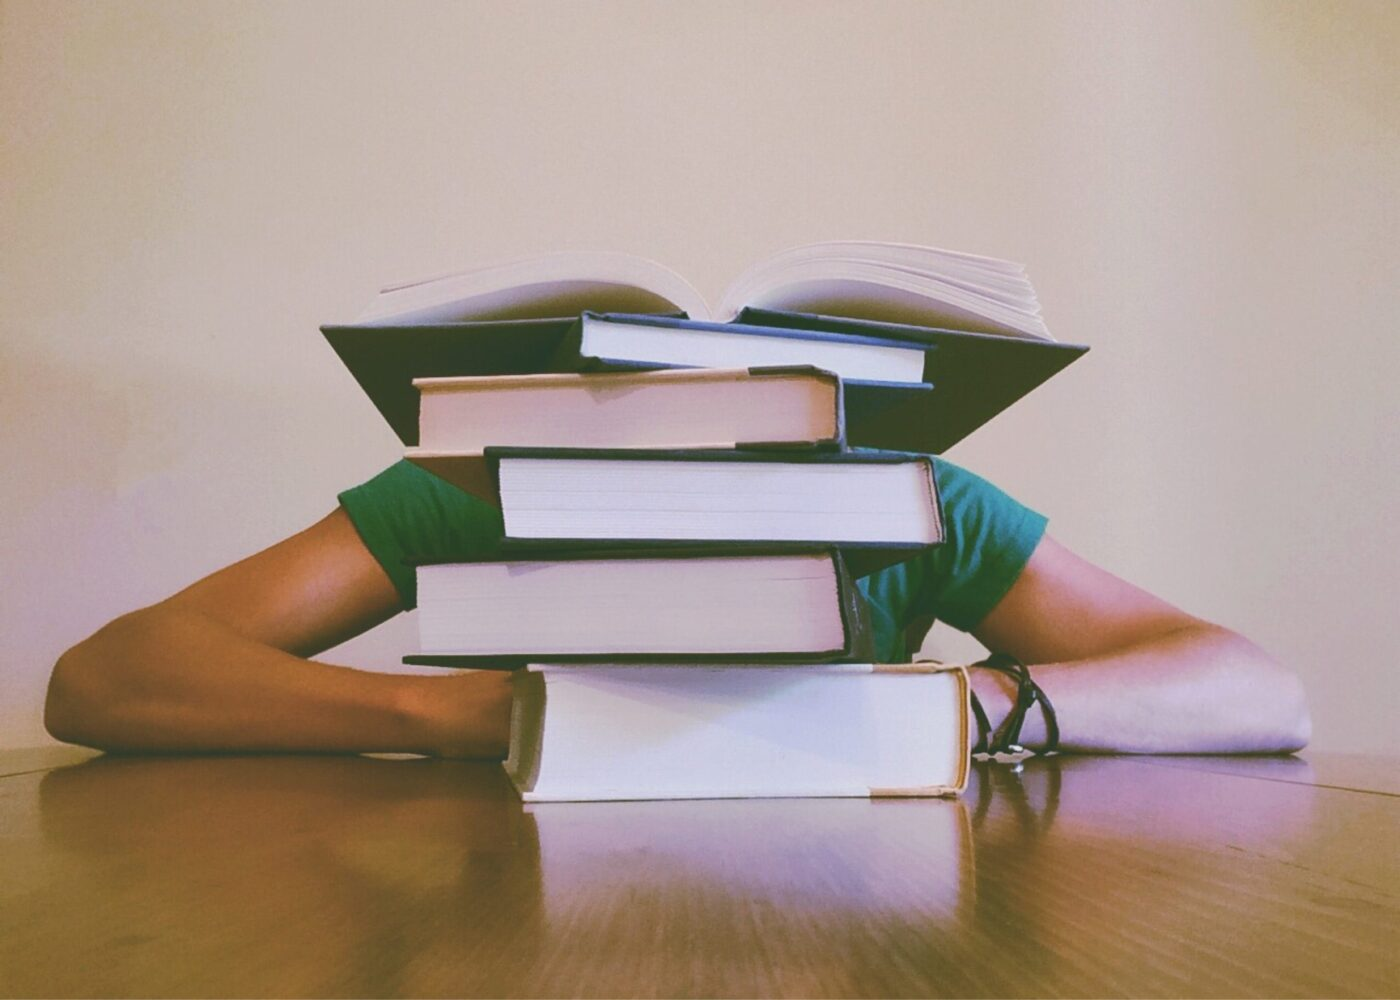 Top tips to deal with exam stress